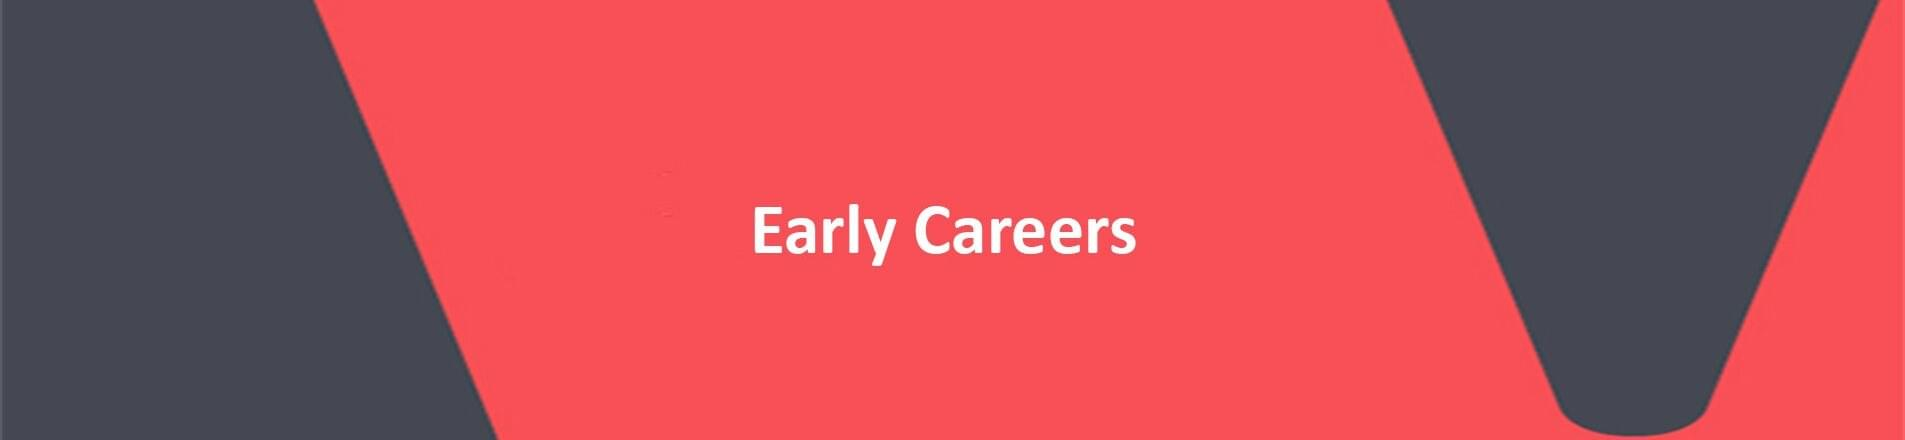 Red background with white text spelling early careers.